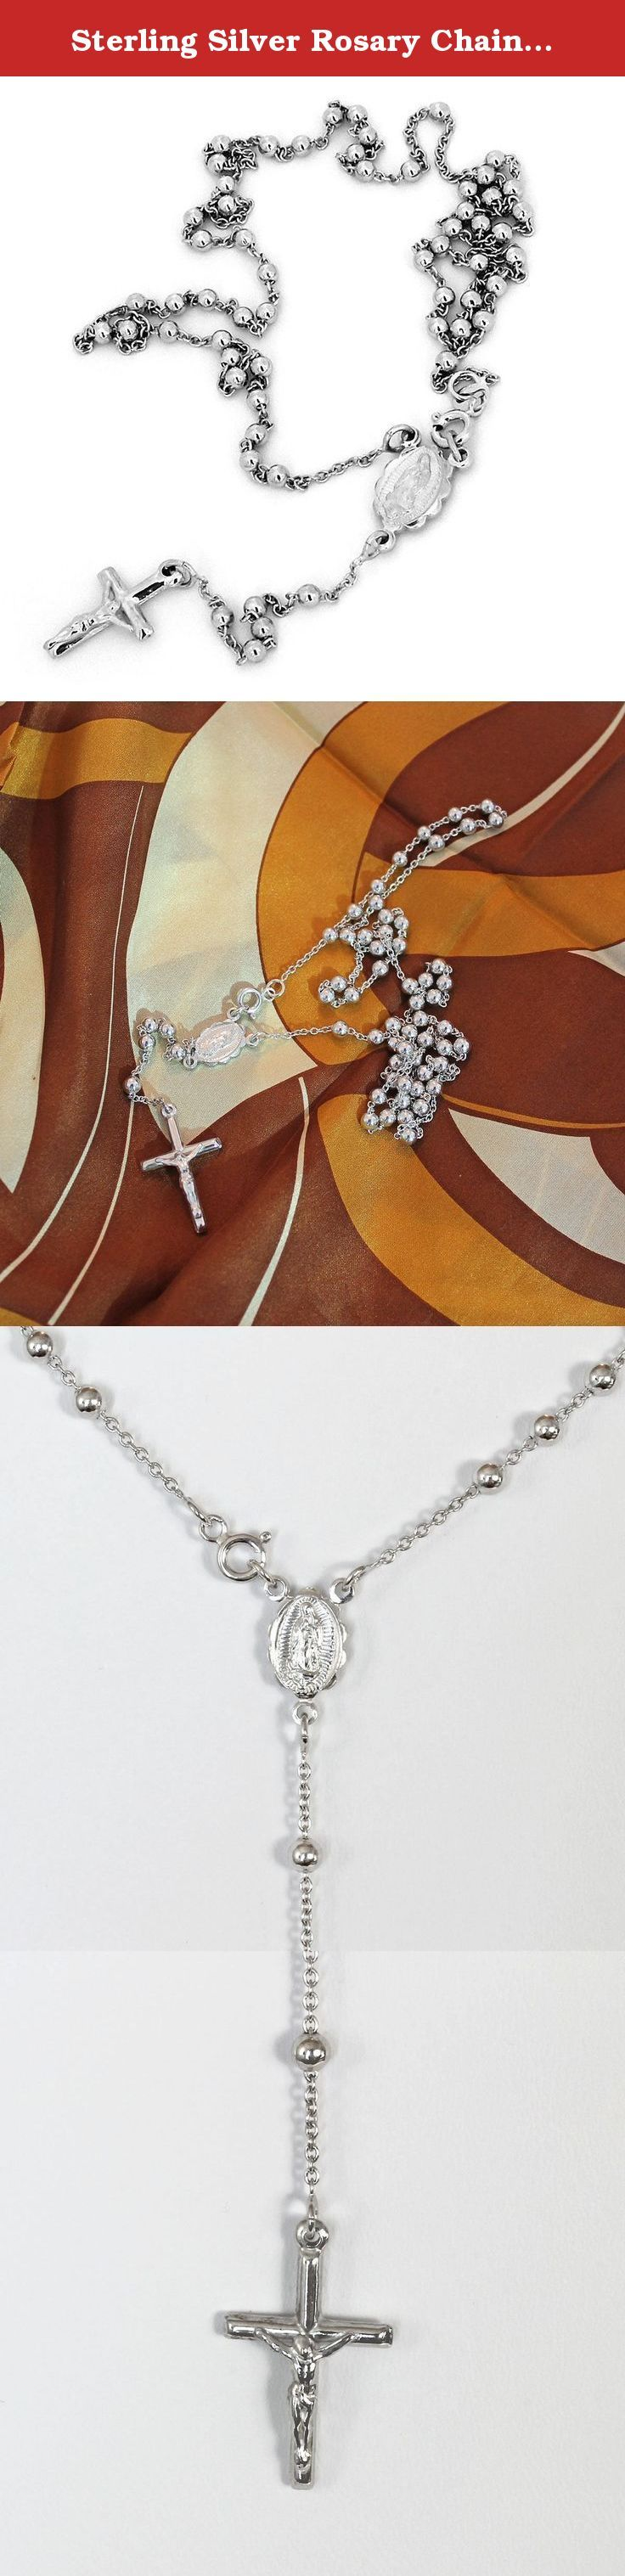 "Sterling Silver Rosary Chain, Cross and St.Maria 20"" Mens/Ladies Necklace - 5mm. This necklace is made of solid sterling silver with anti-tarnish rhodium plating."